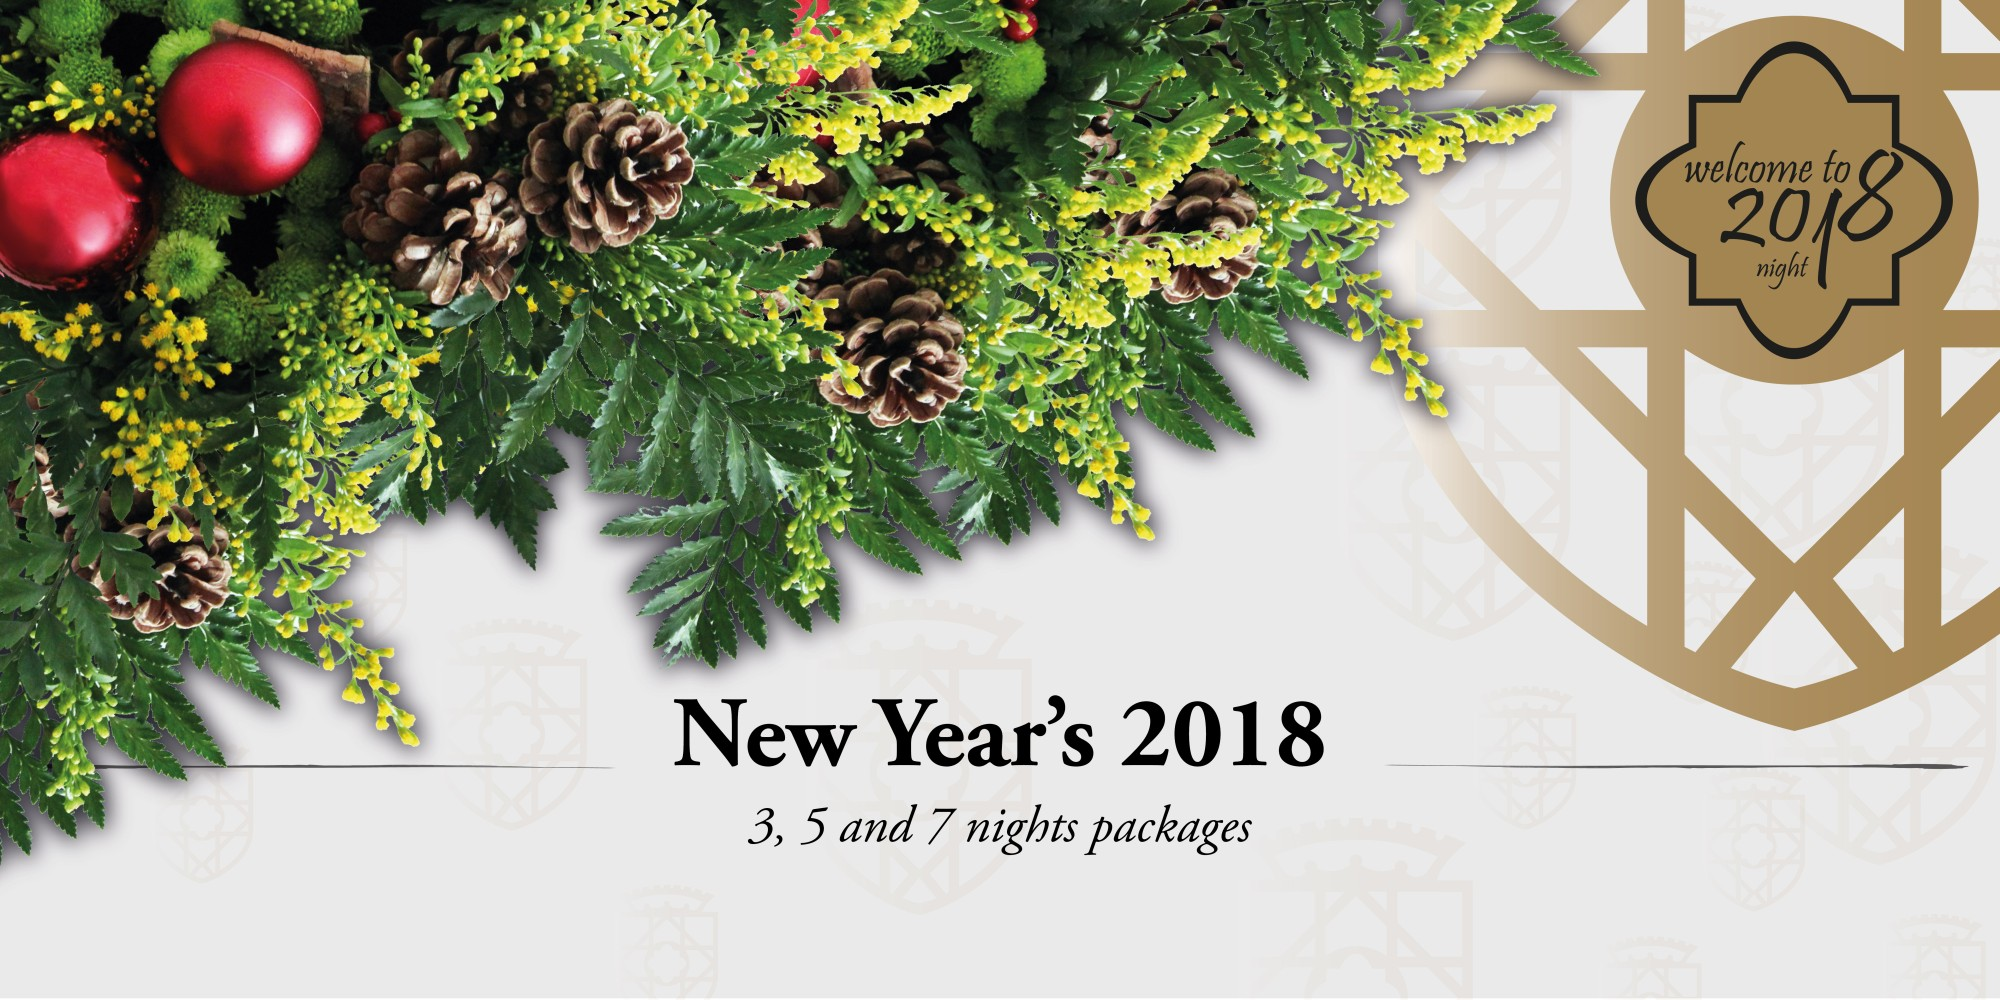 New Year's 2018 Packages